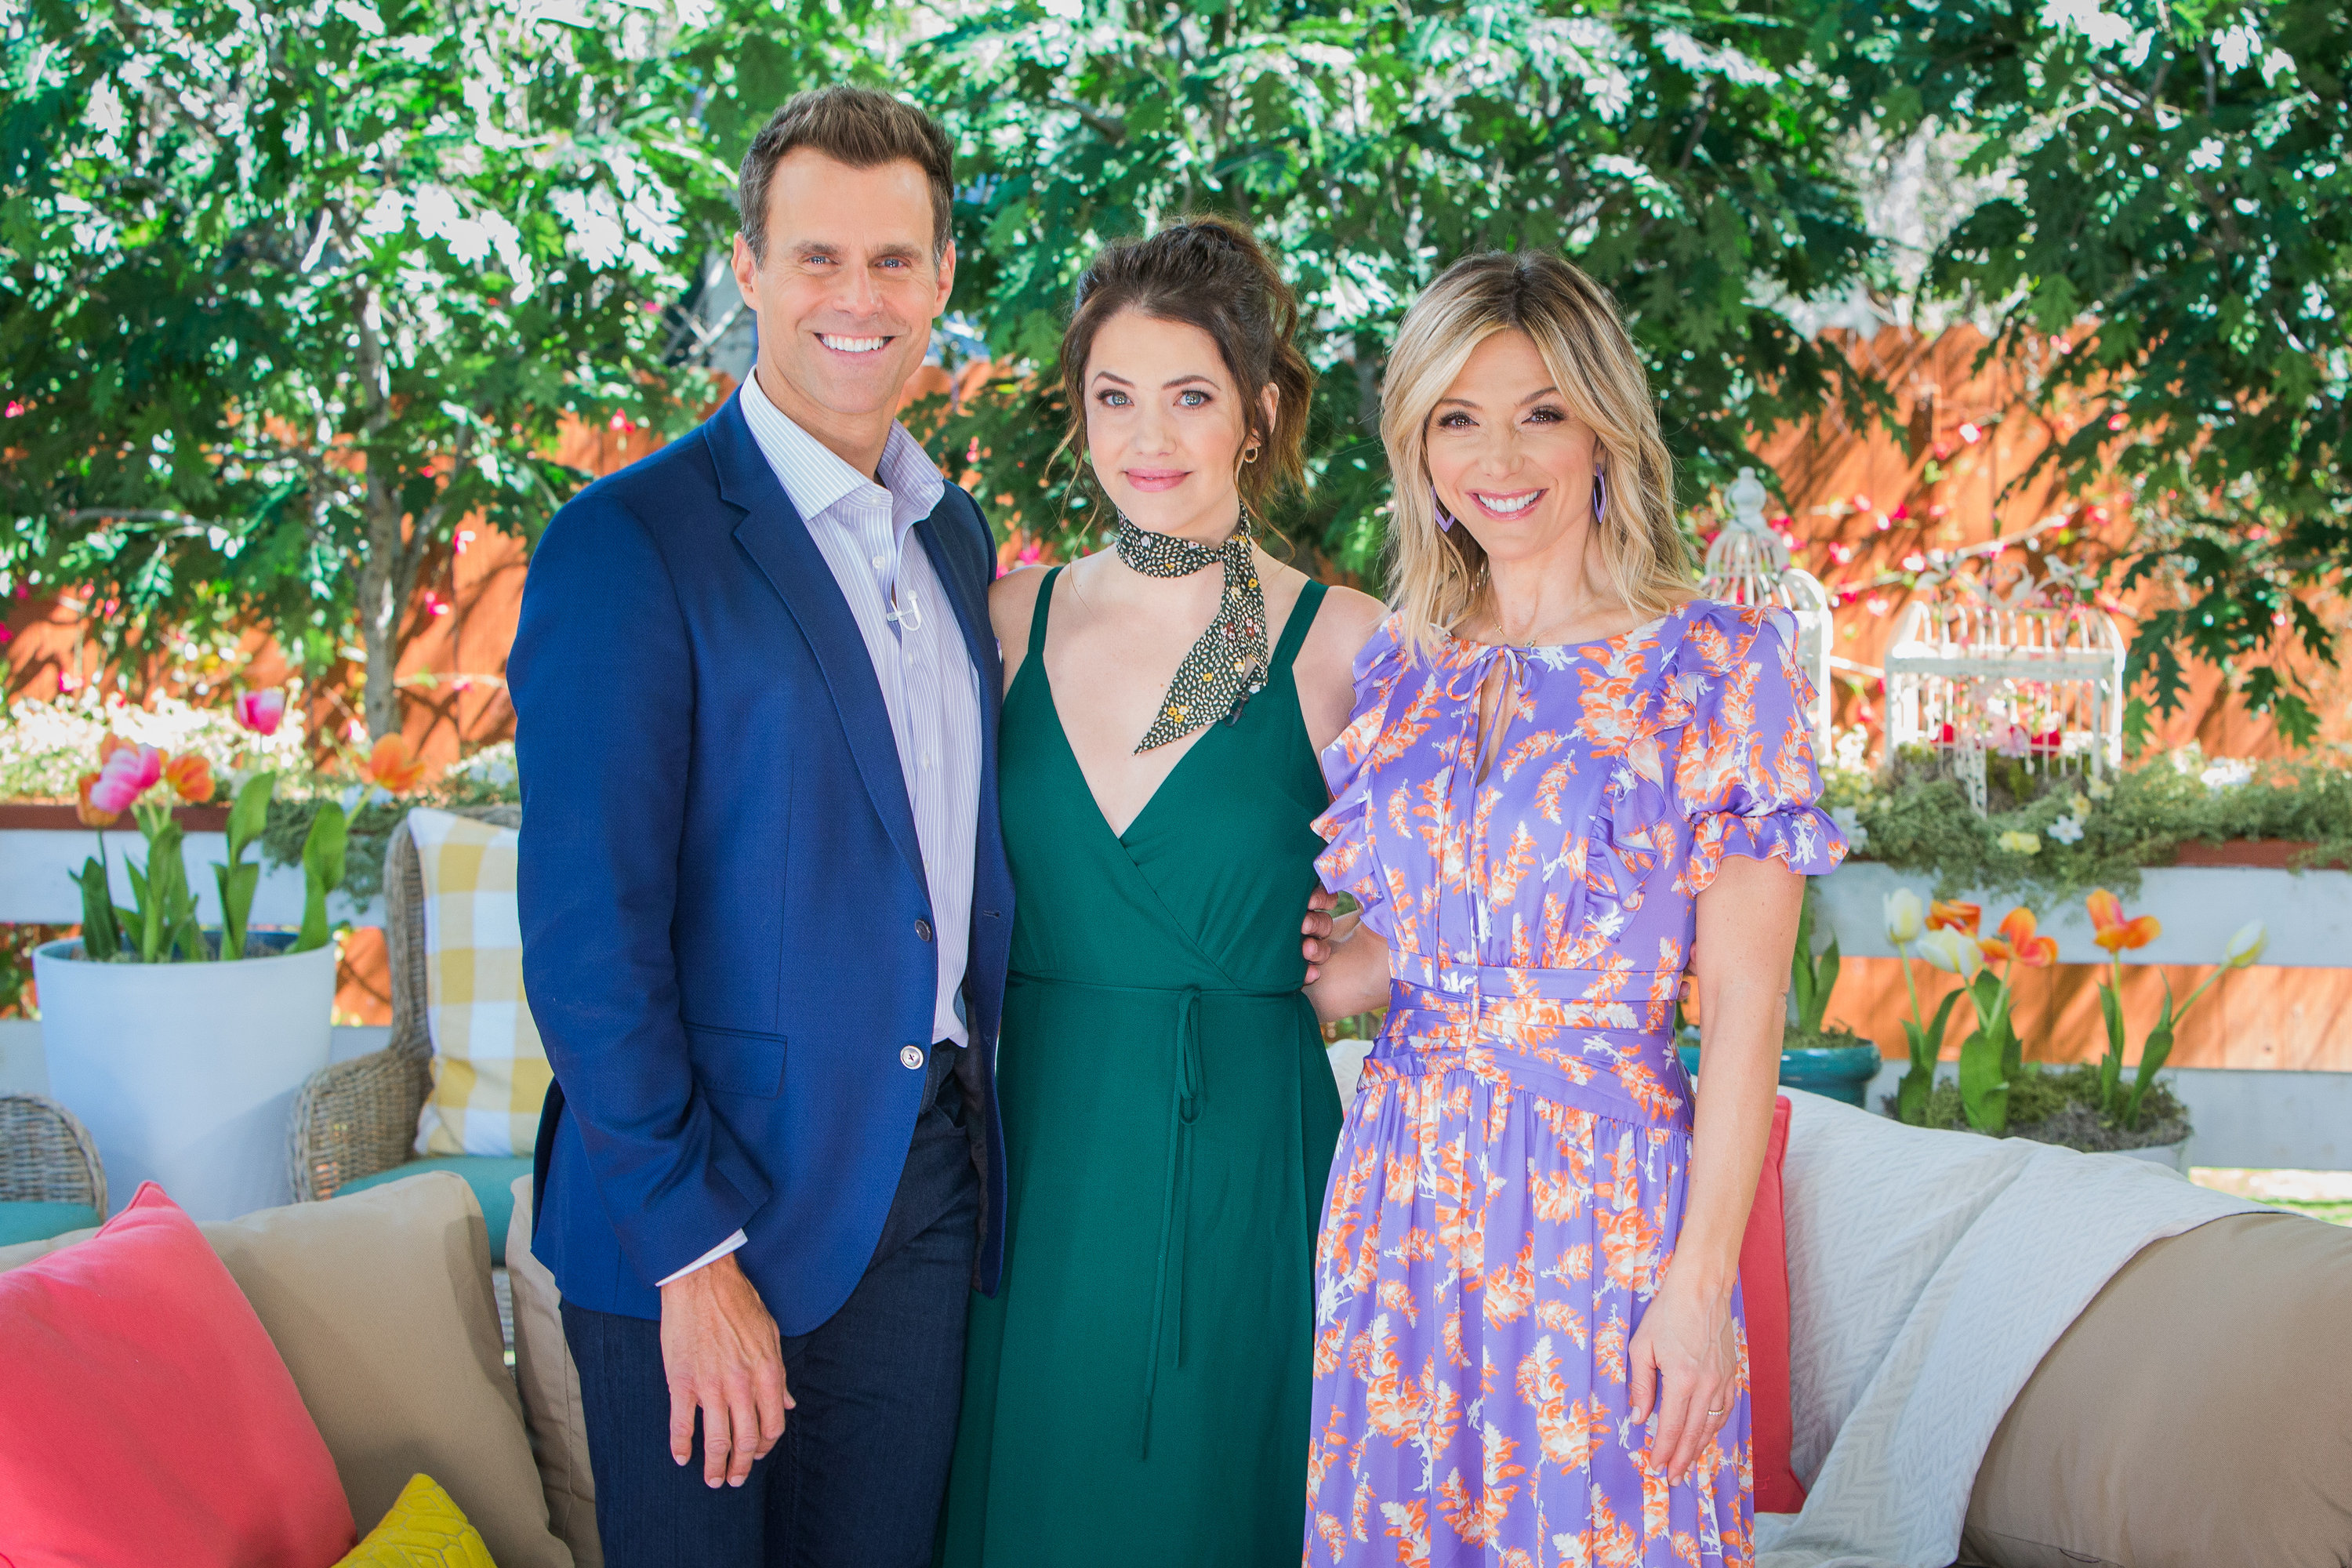 Friday March 15th 2019 Home Family Hallmark Channel